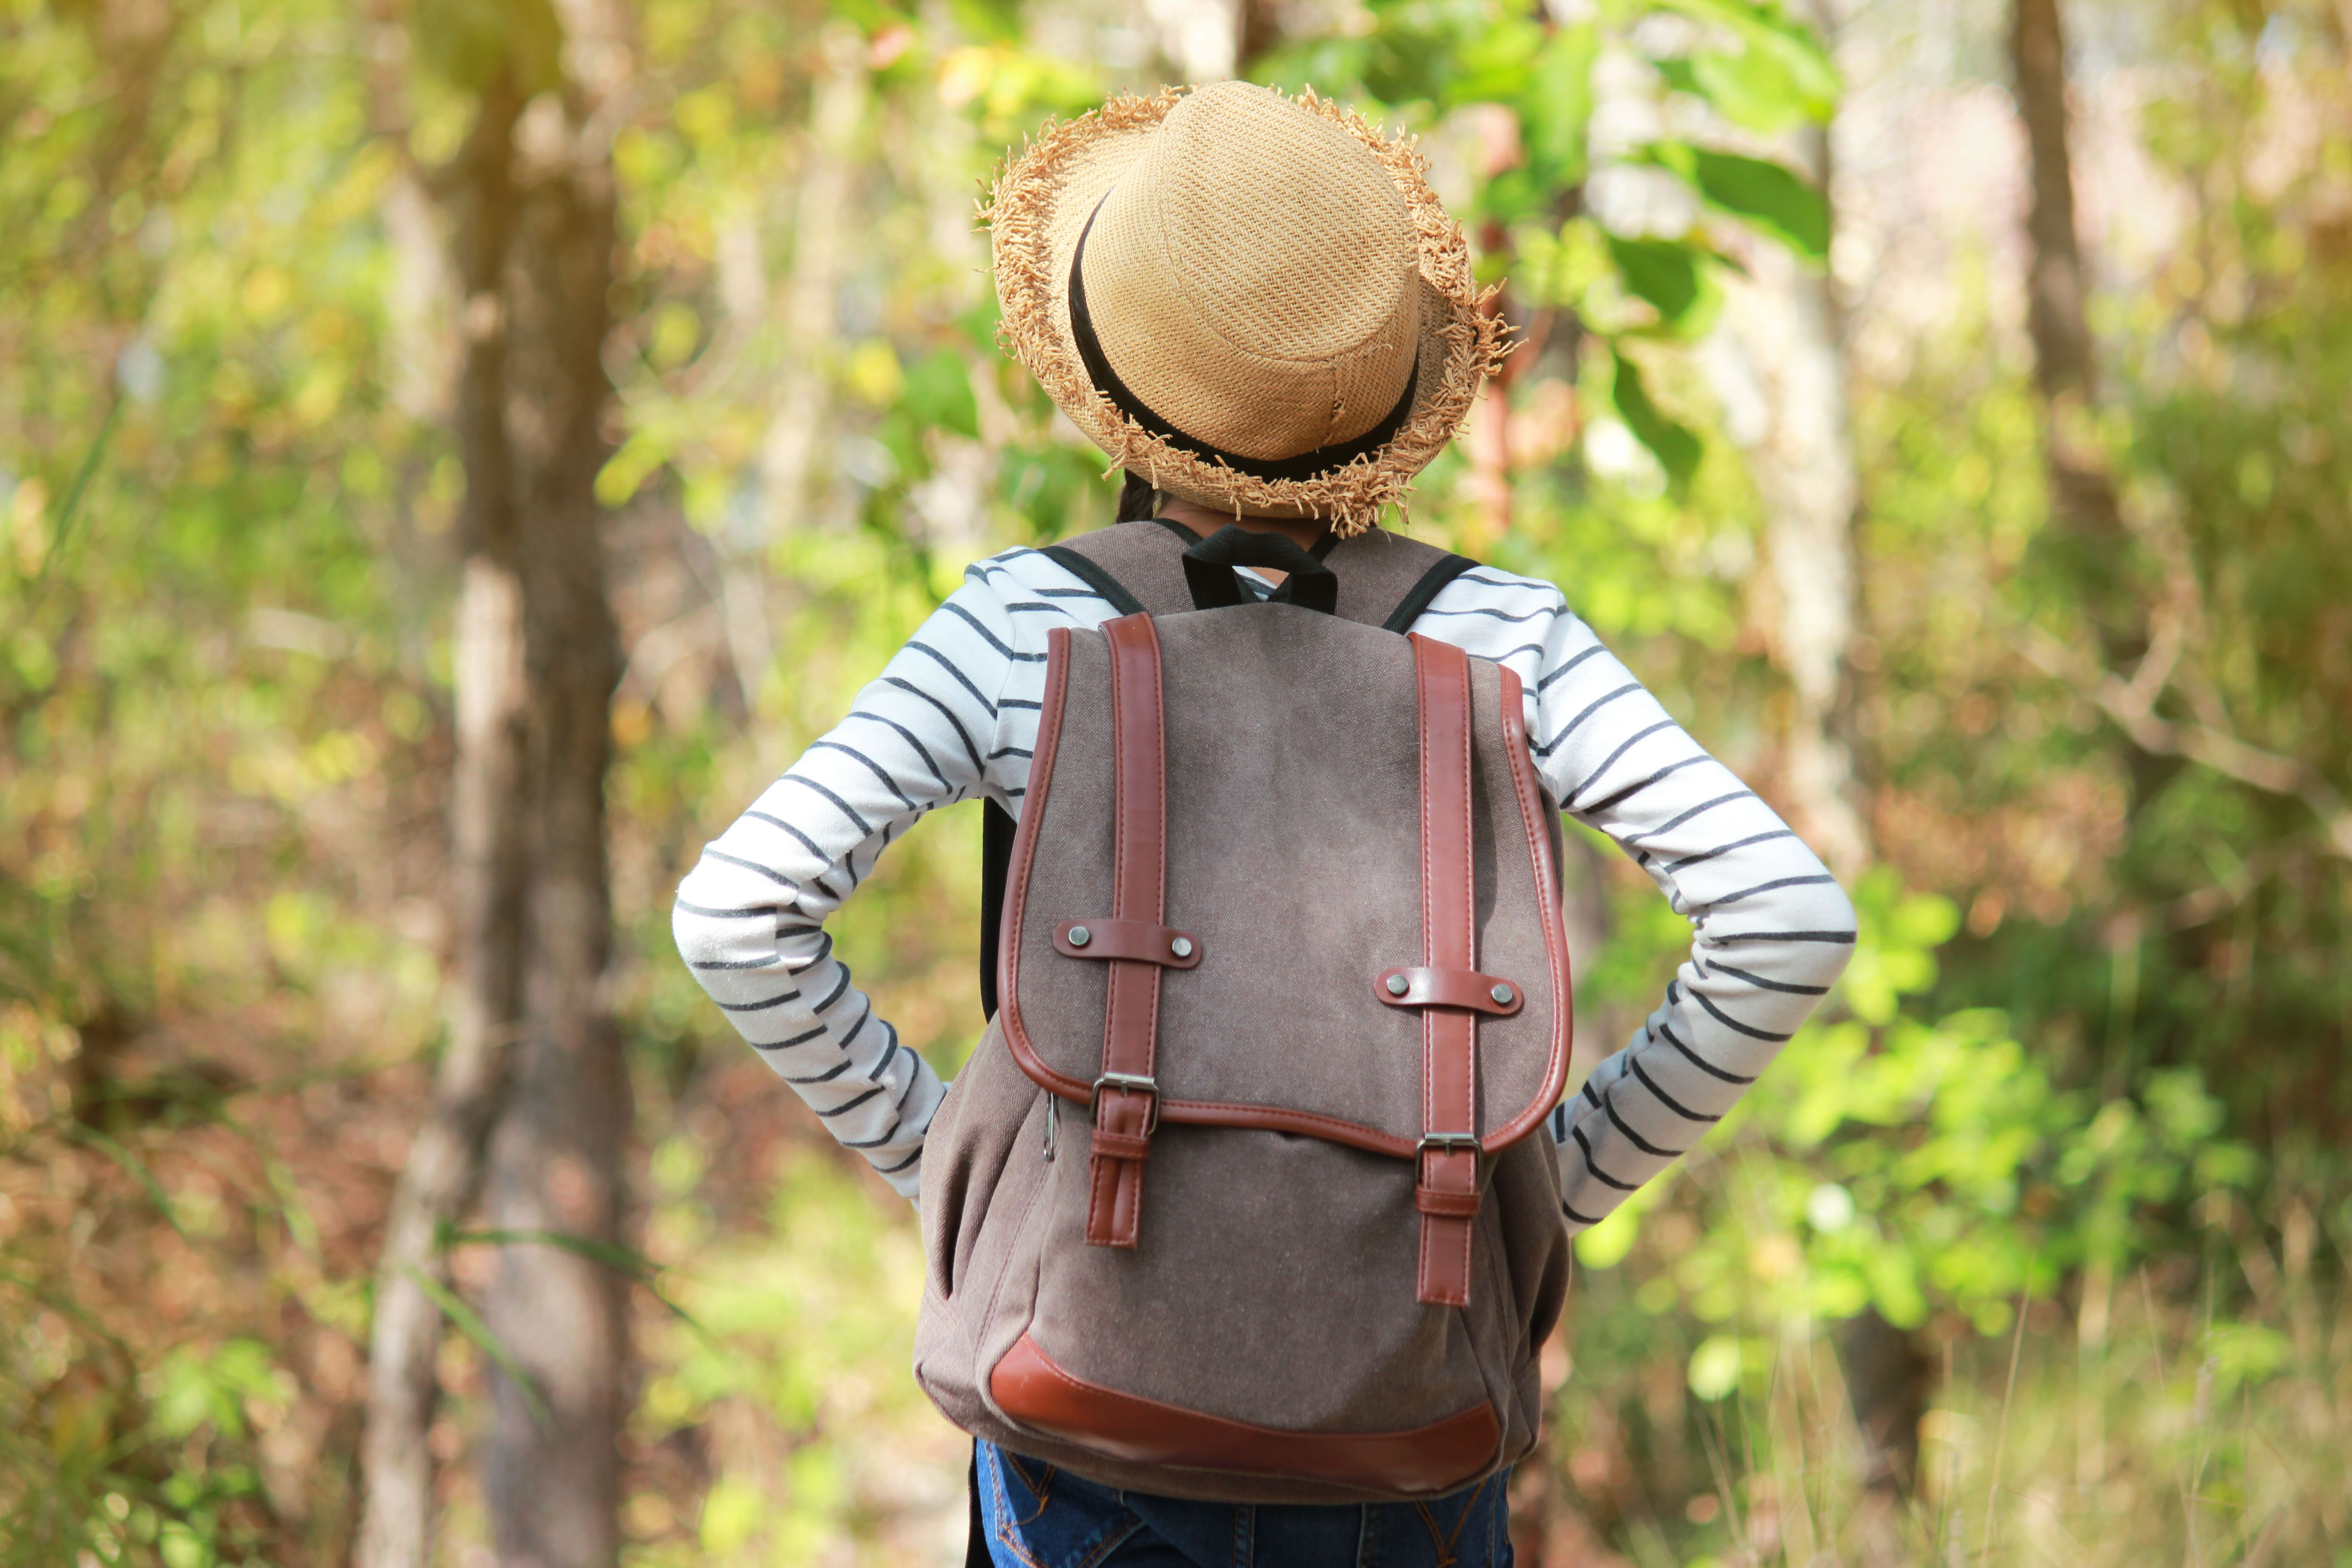 c8fe583a44 Does Your Back Hurt From Wearing Your Backpack